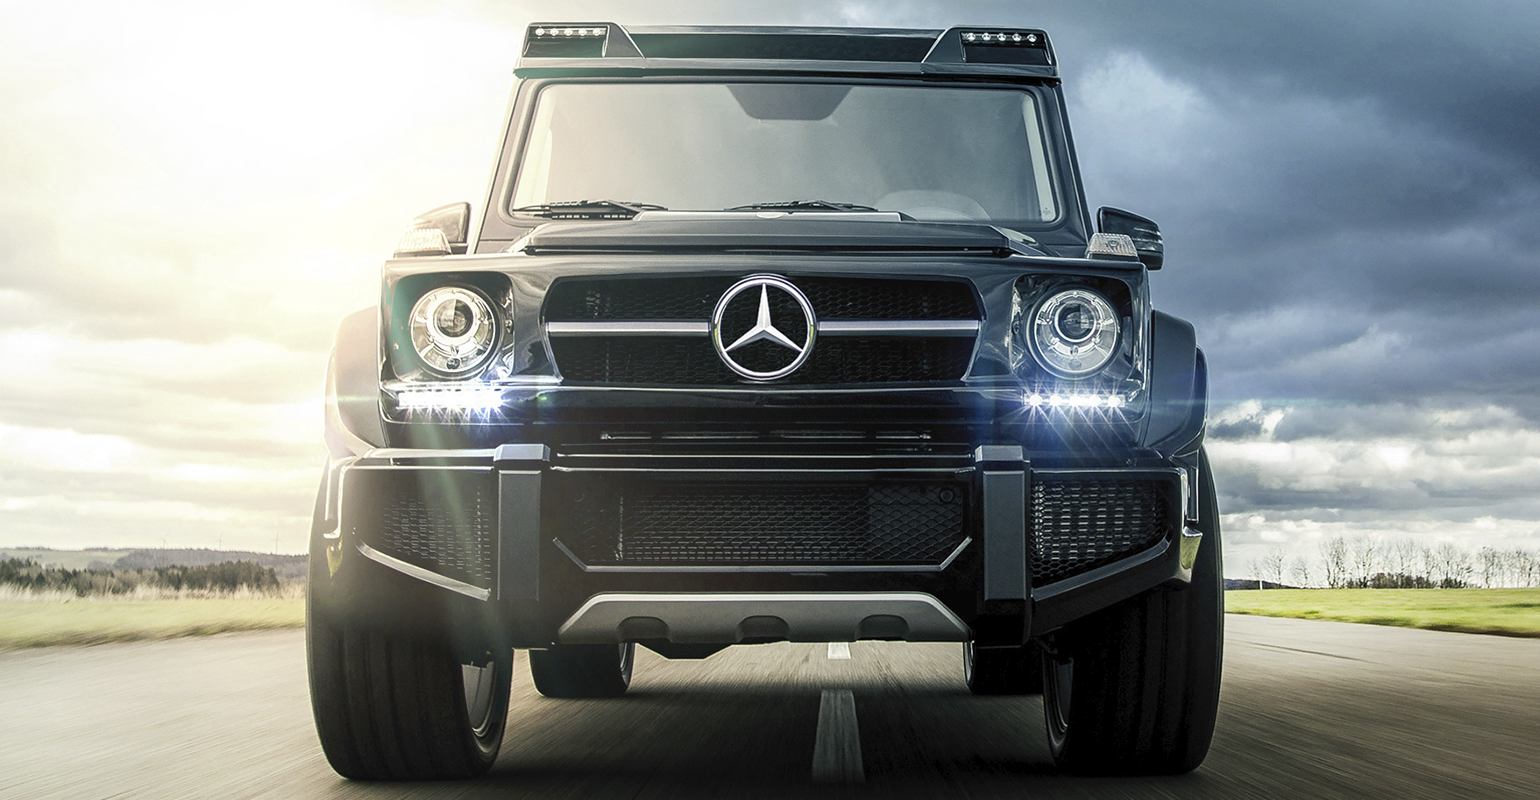 Mercedes benz g6 hammer edition chelsea truck company for Mercedes benz corp